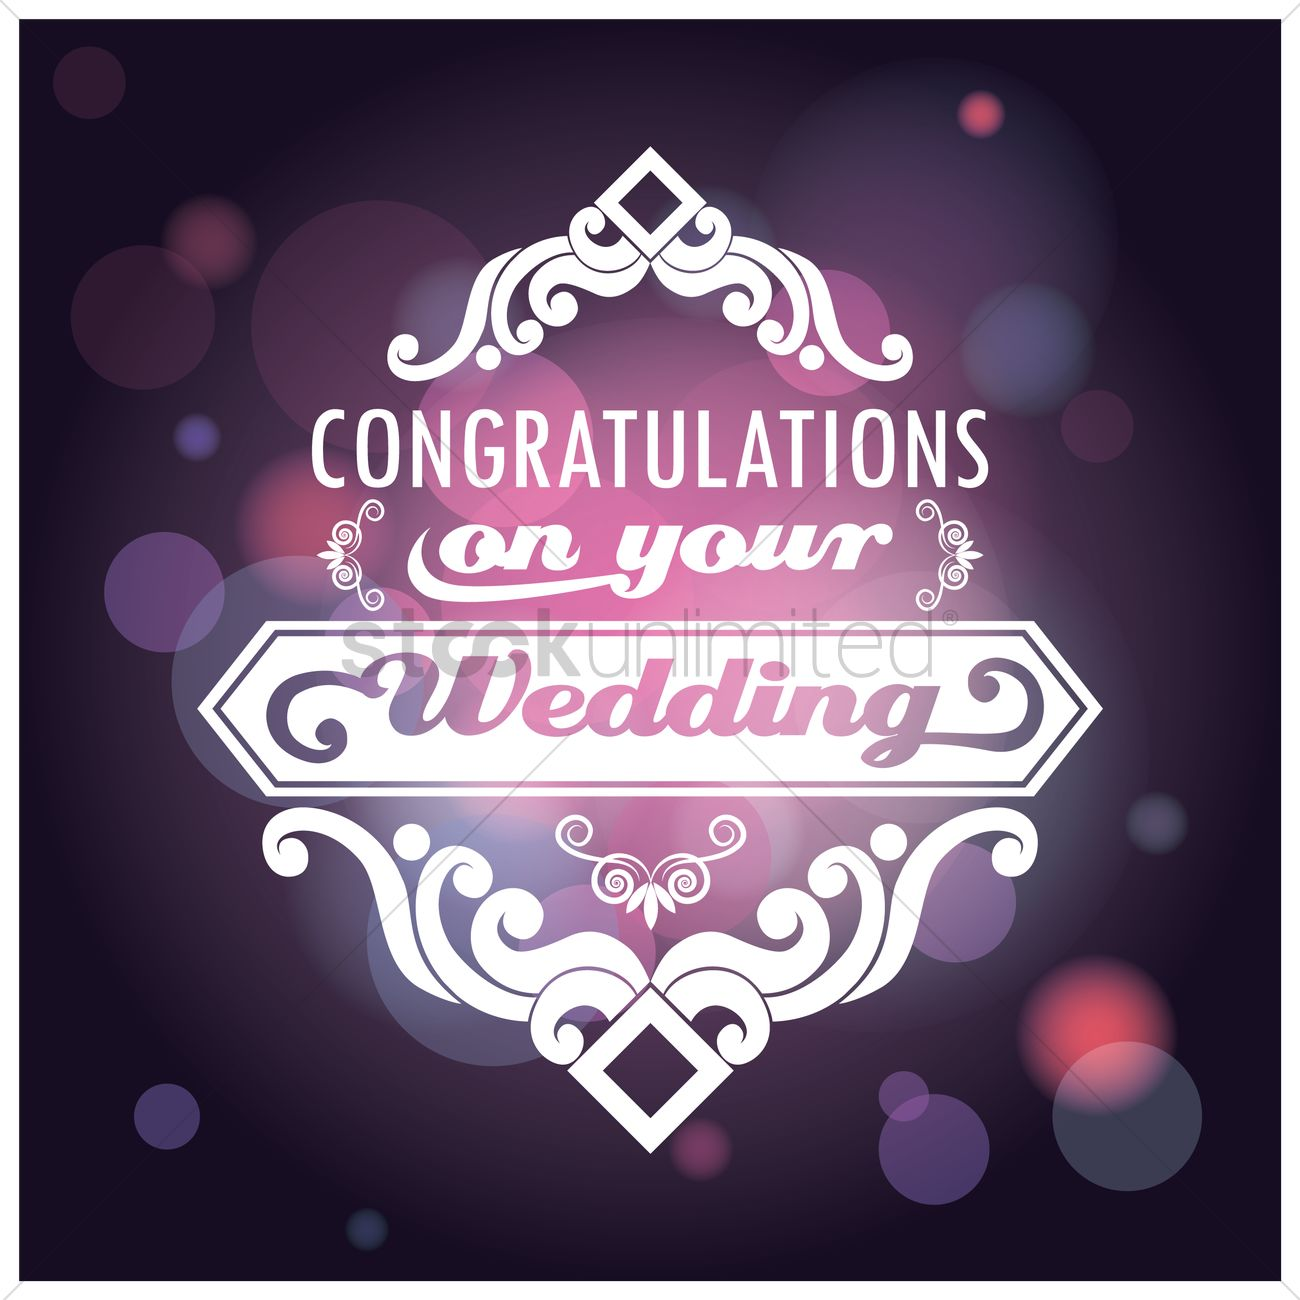 Congratulations on your wedding card Vector Image 1710365